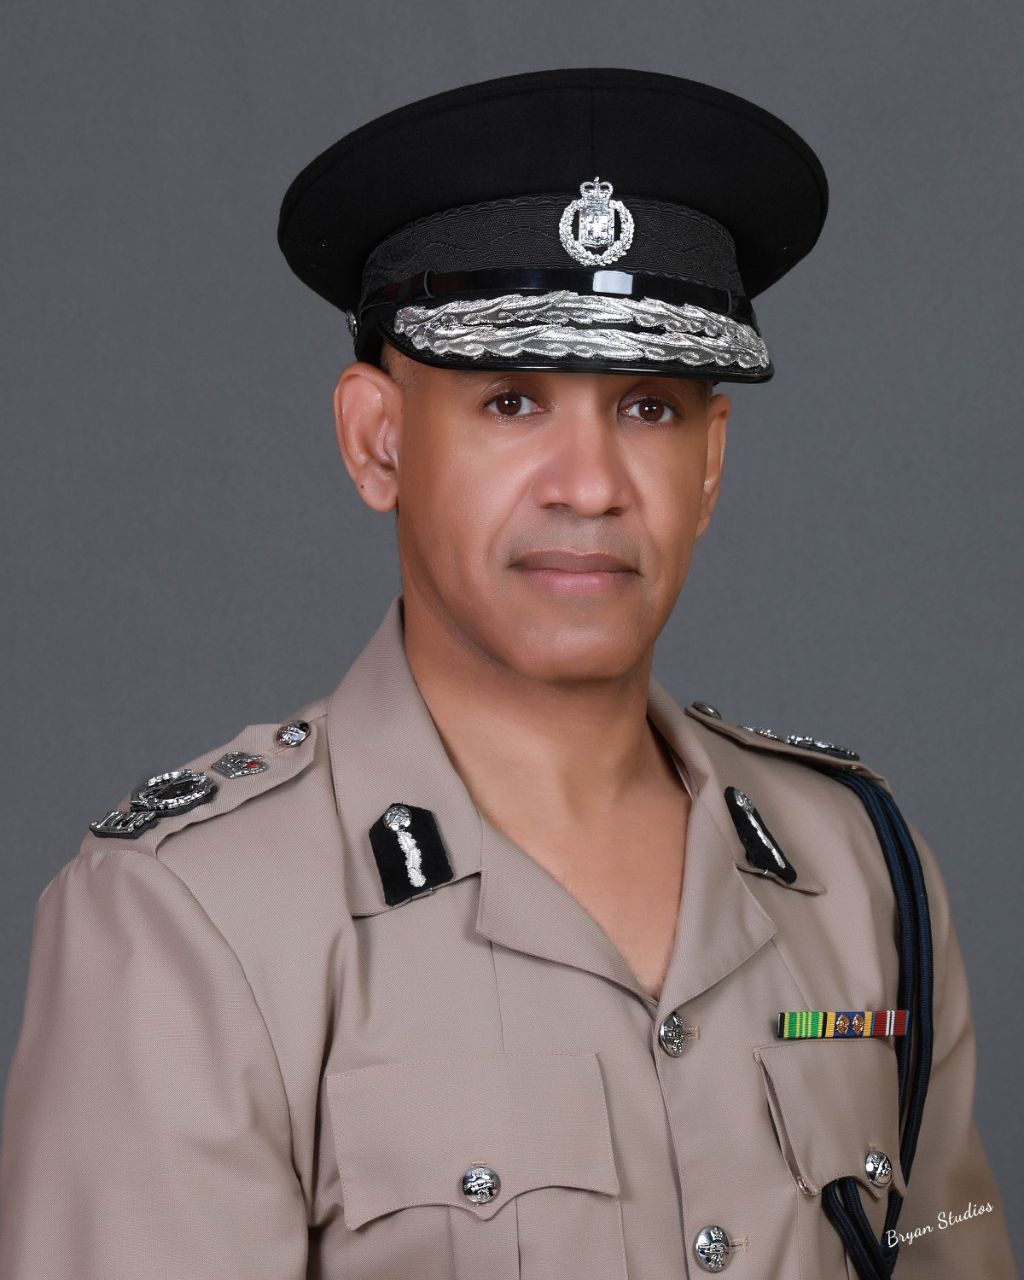 Commissioner of Police, Major General Antony Anderson